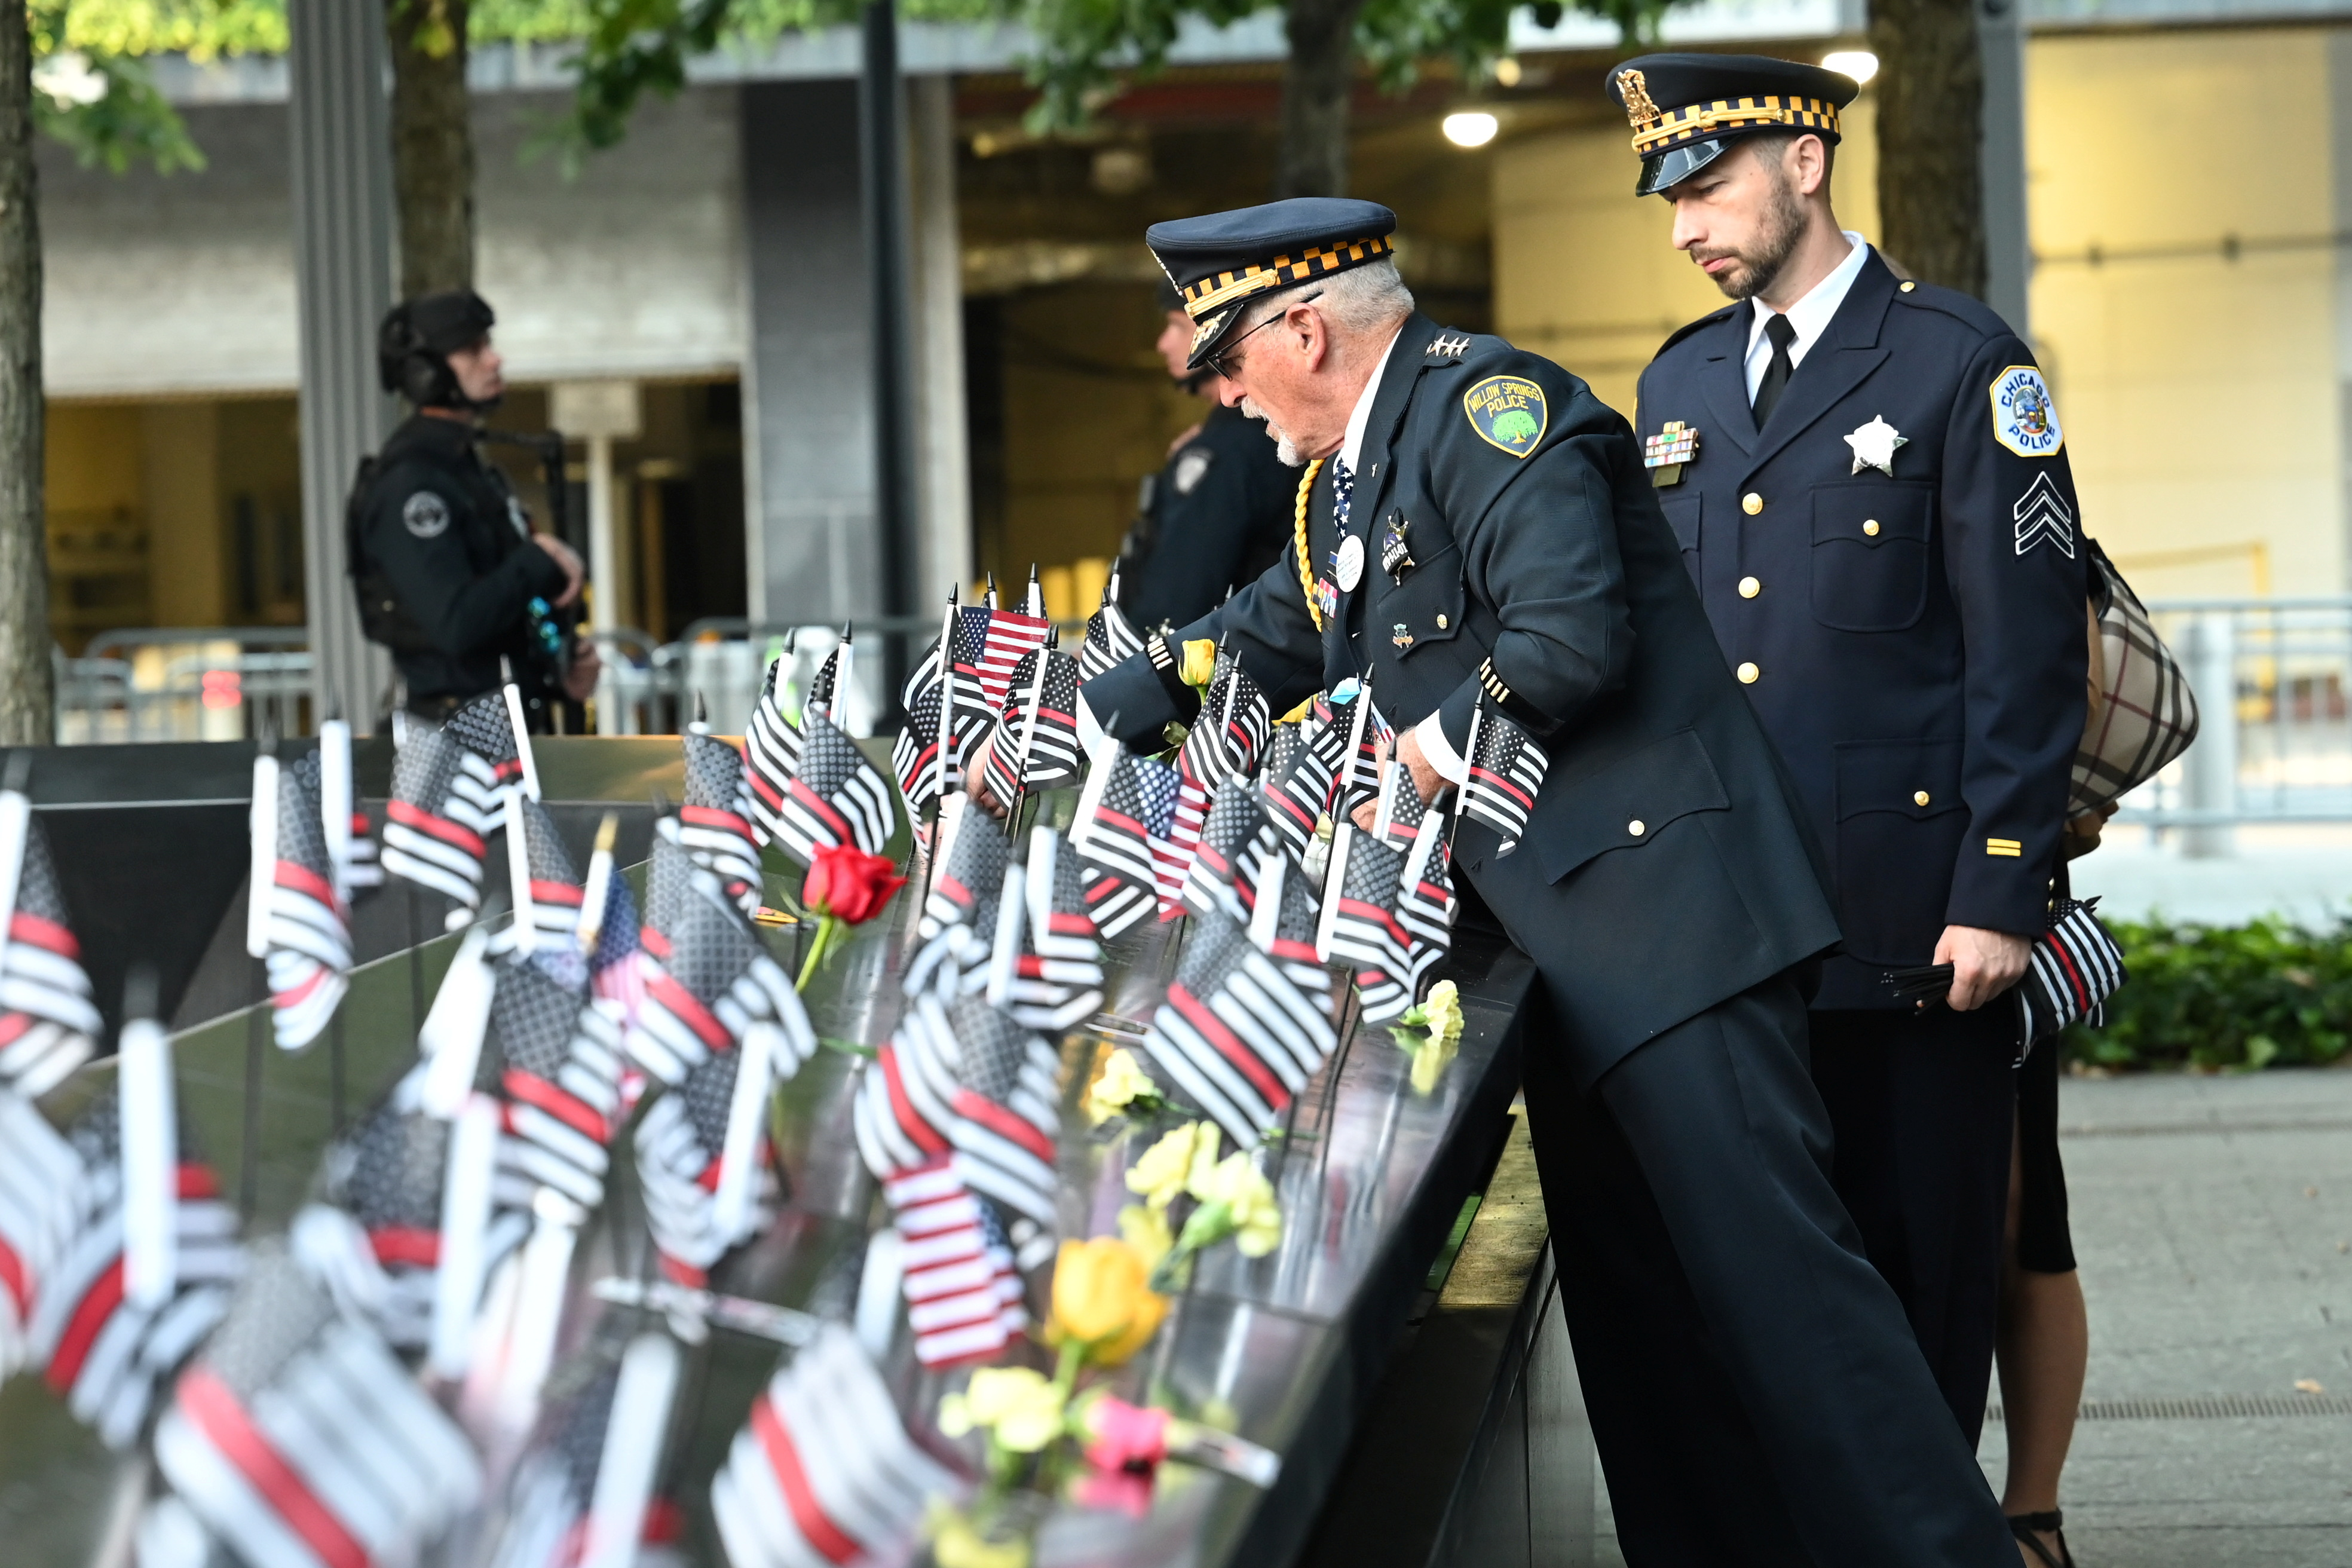 Retired Willow Springs, IL Chief Sam Pulia and his nephew, Chicago Police Sgt. Daniel Pulia place flags at the South Tower, before ceremonies marking the 20th anniversary of the September 11 attack, in New York, U.S., September 11, 2021. David Handschuh/Pool via REUTERS